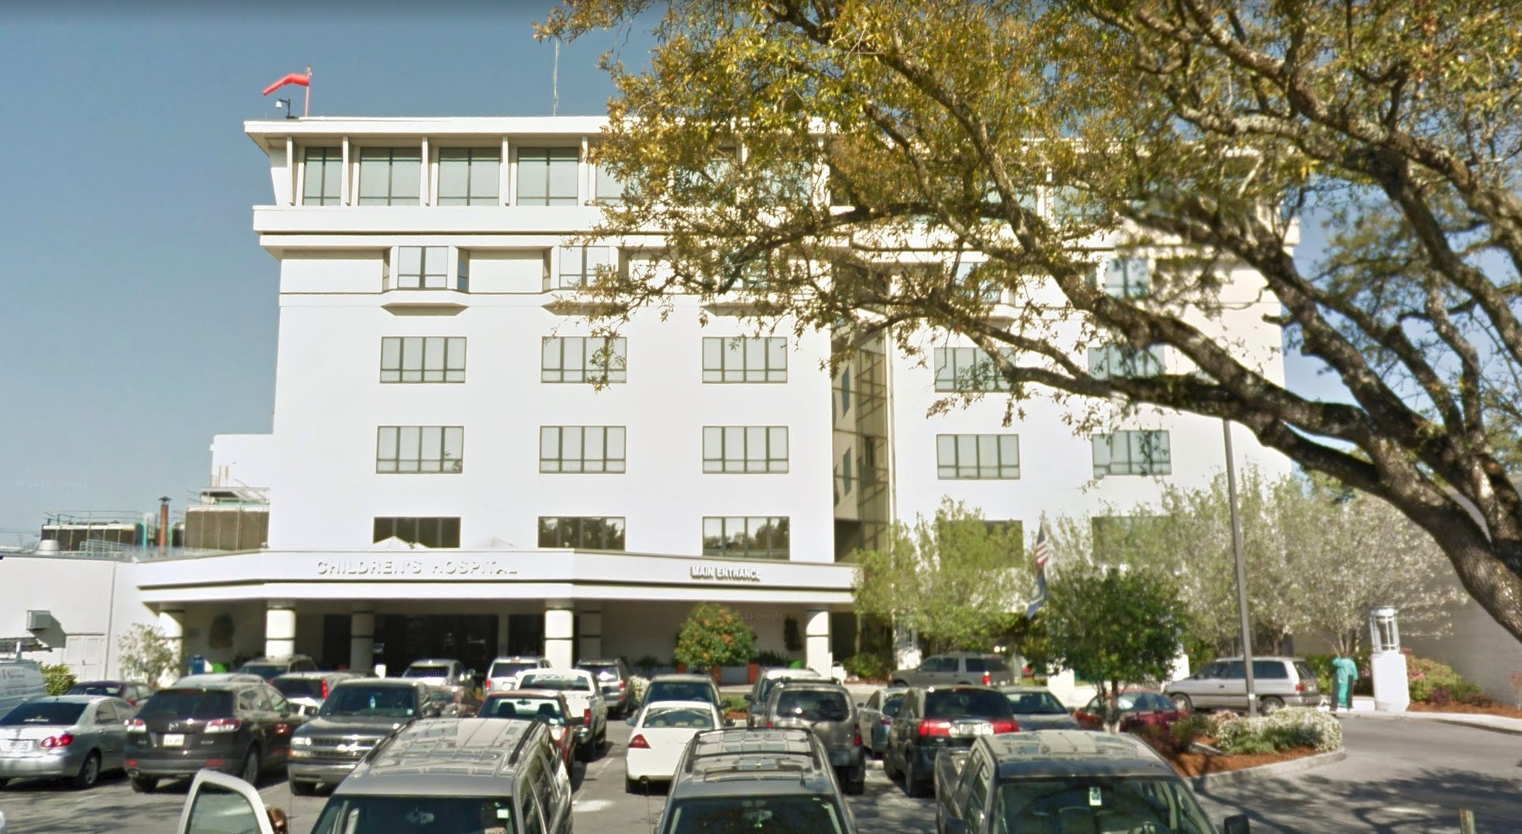 Children's Hospital of New Orleans. (Screenshot via Google Street View)